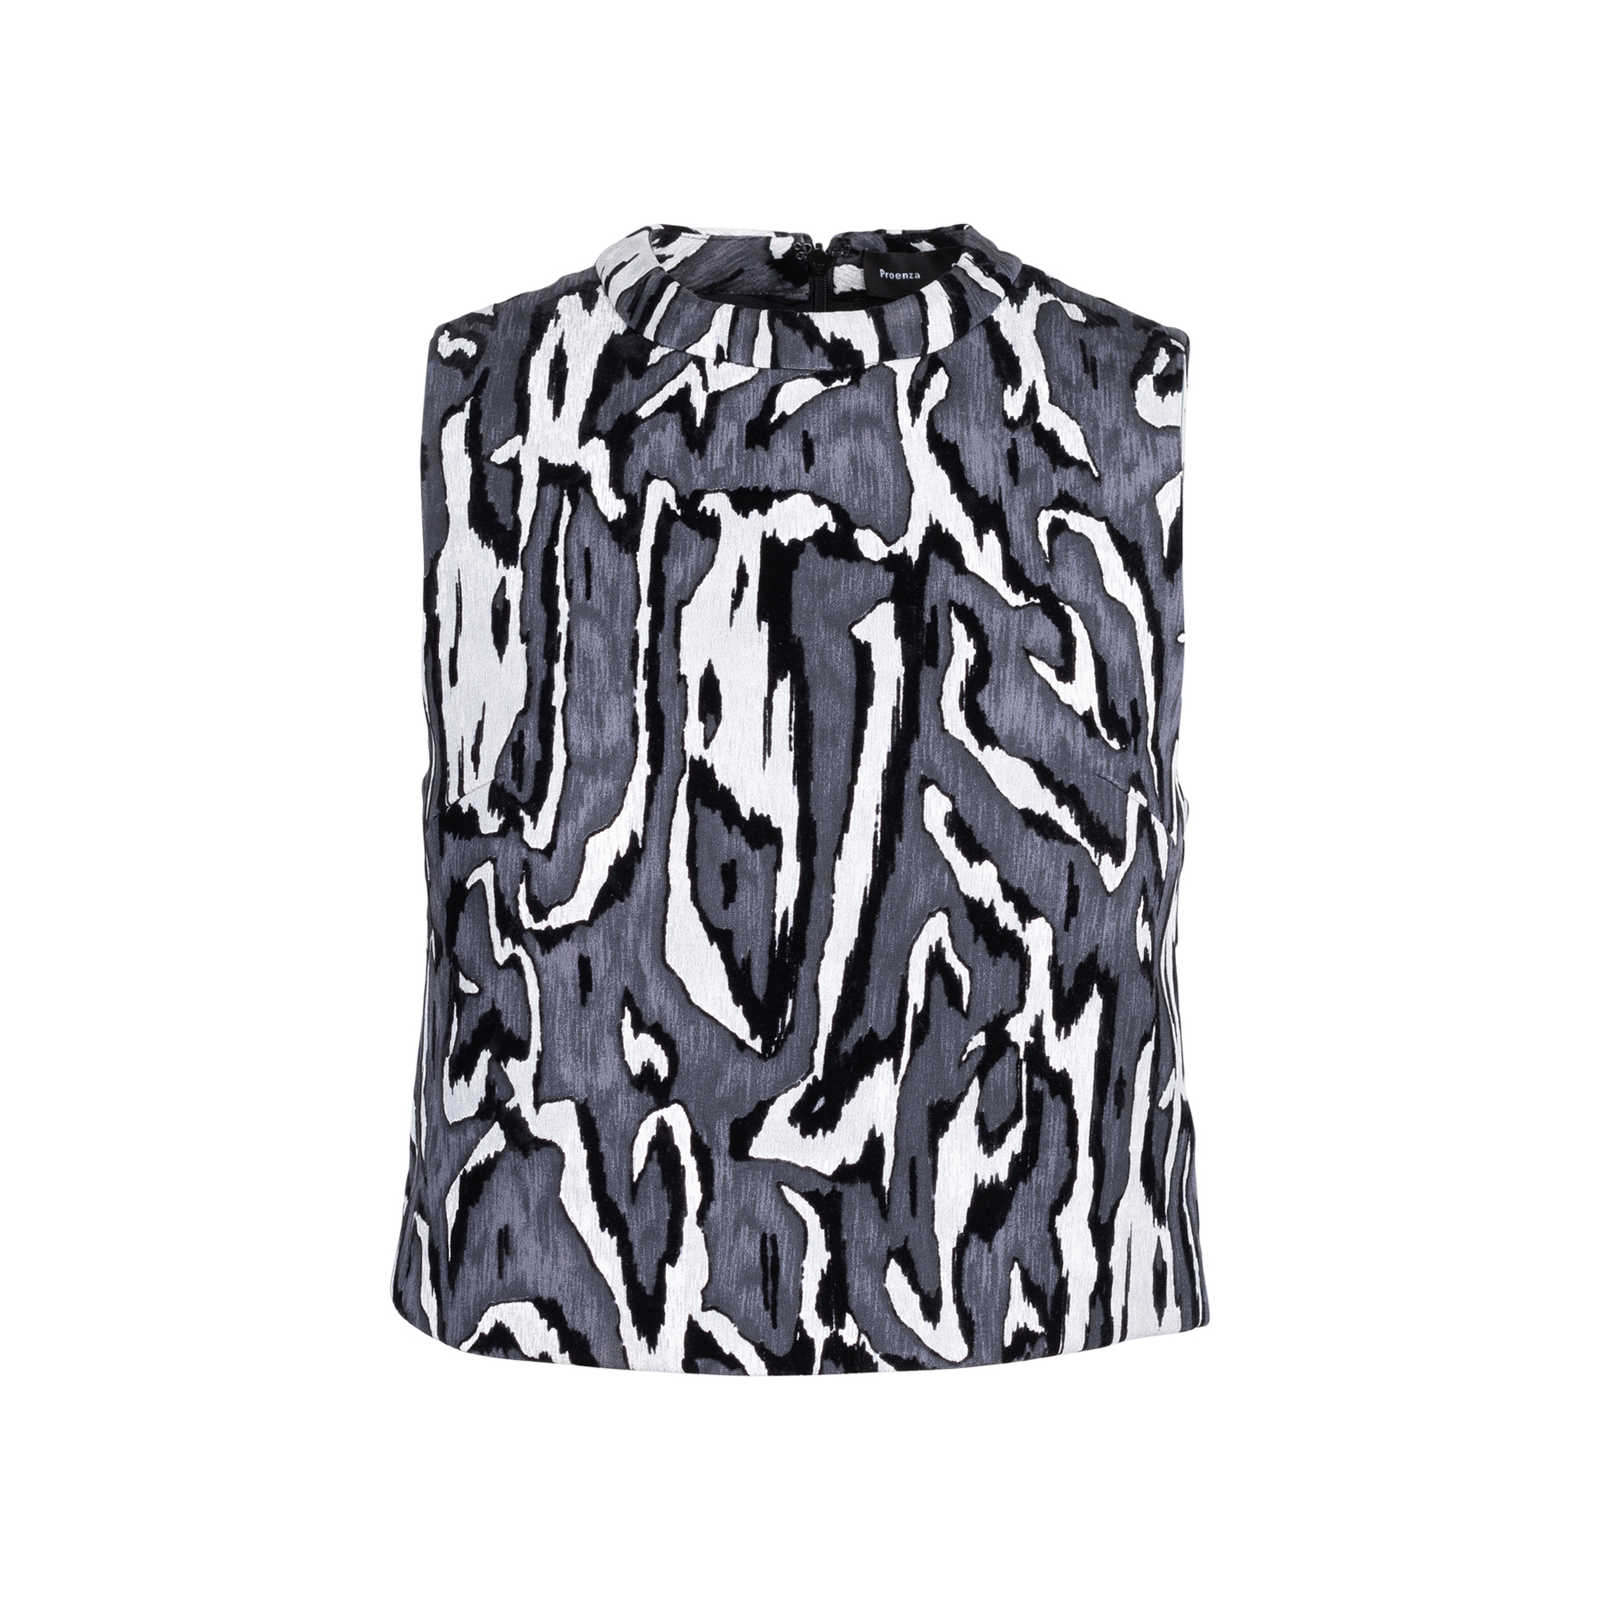 Authentic Second Hand Proenza Schouler Velvet Pattern Top Pss 515 00162 The Fifth Collection